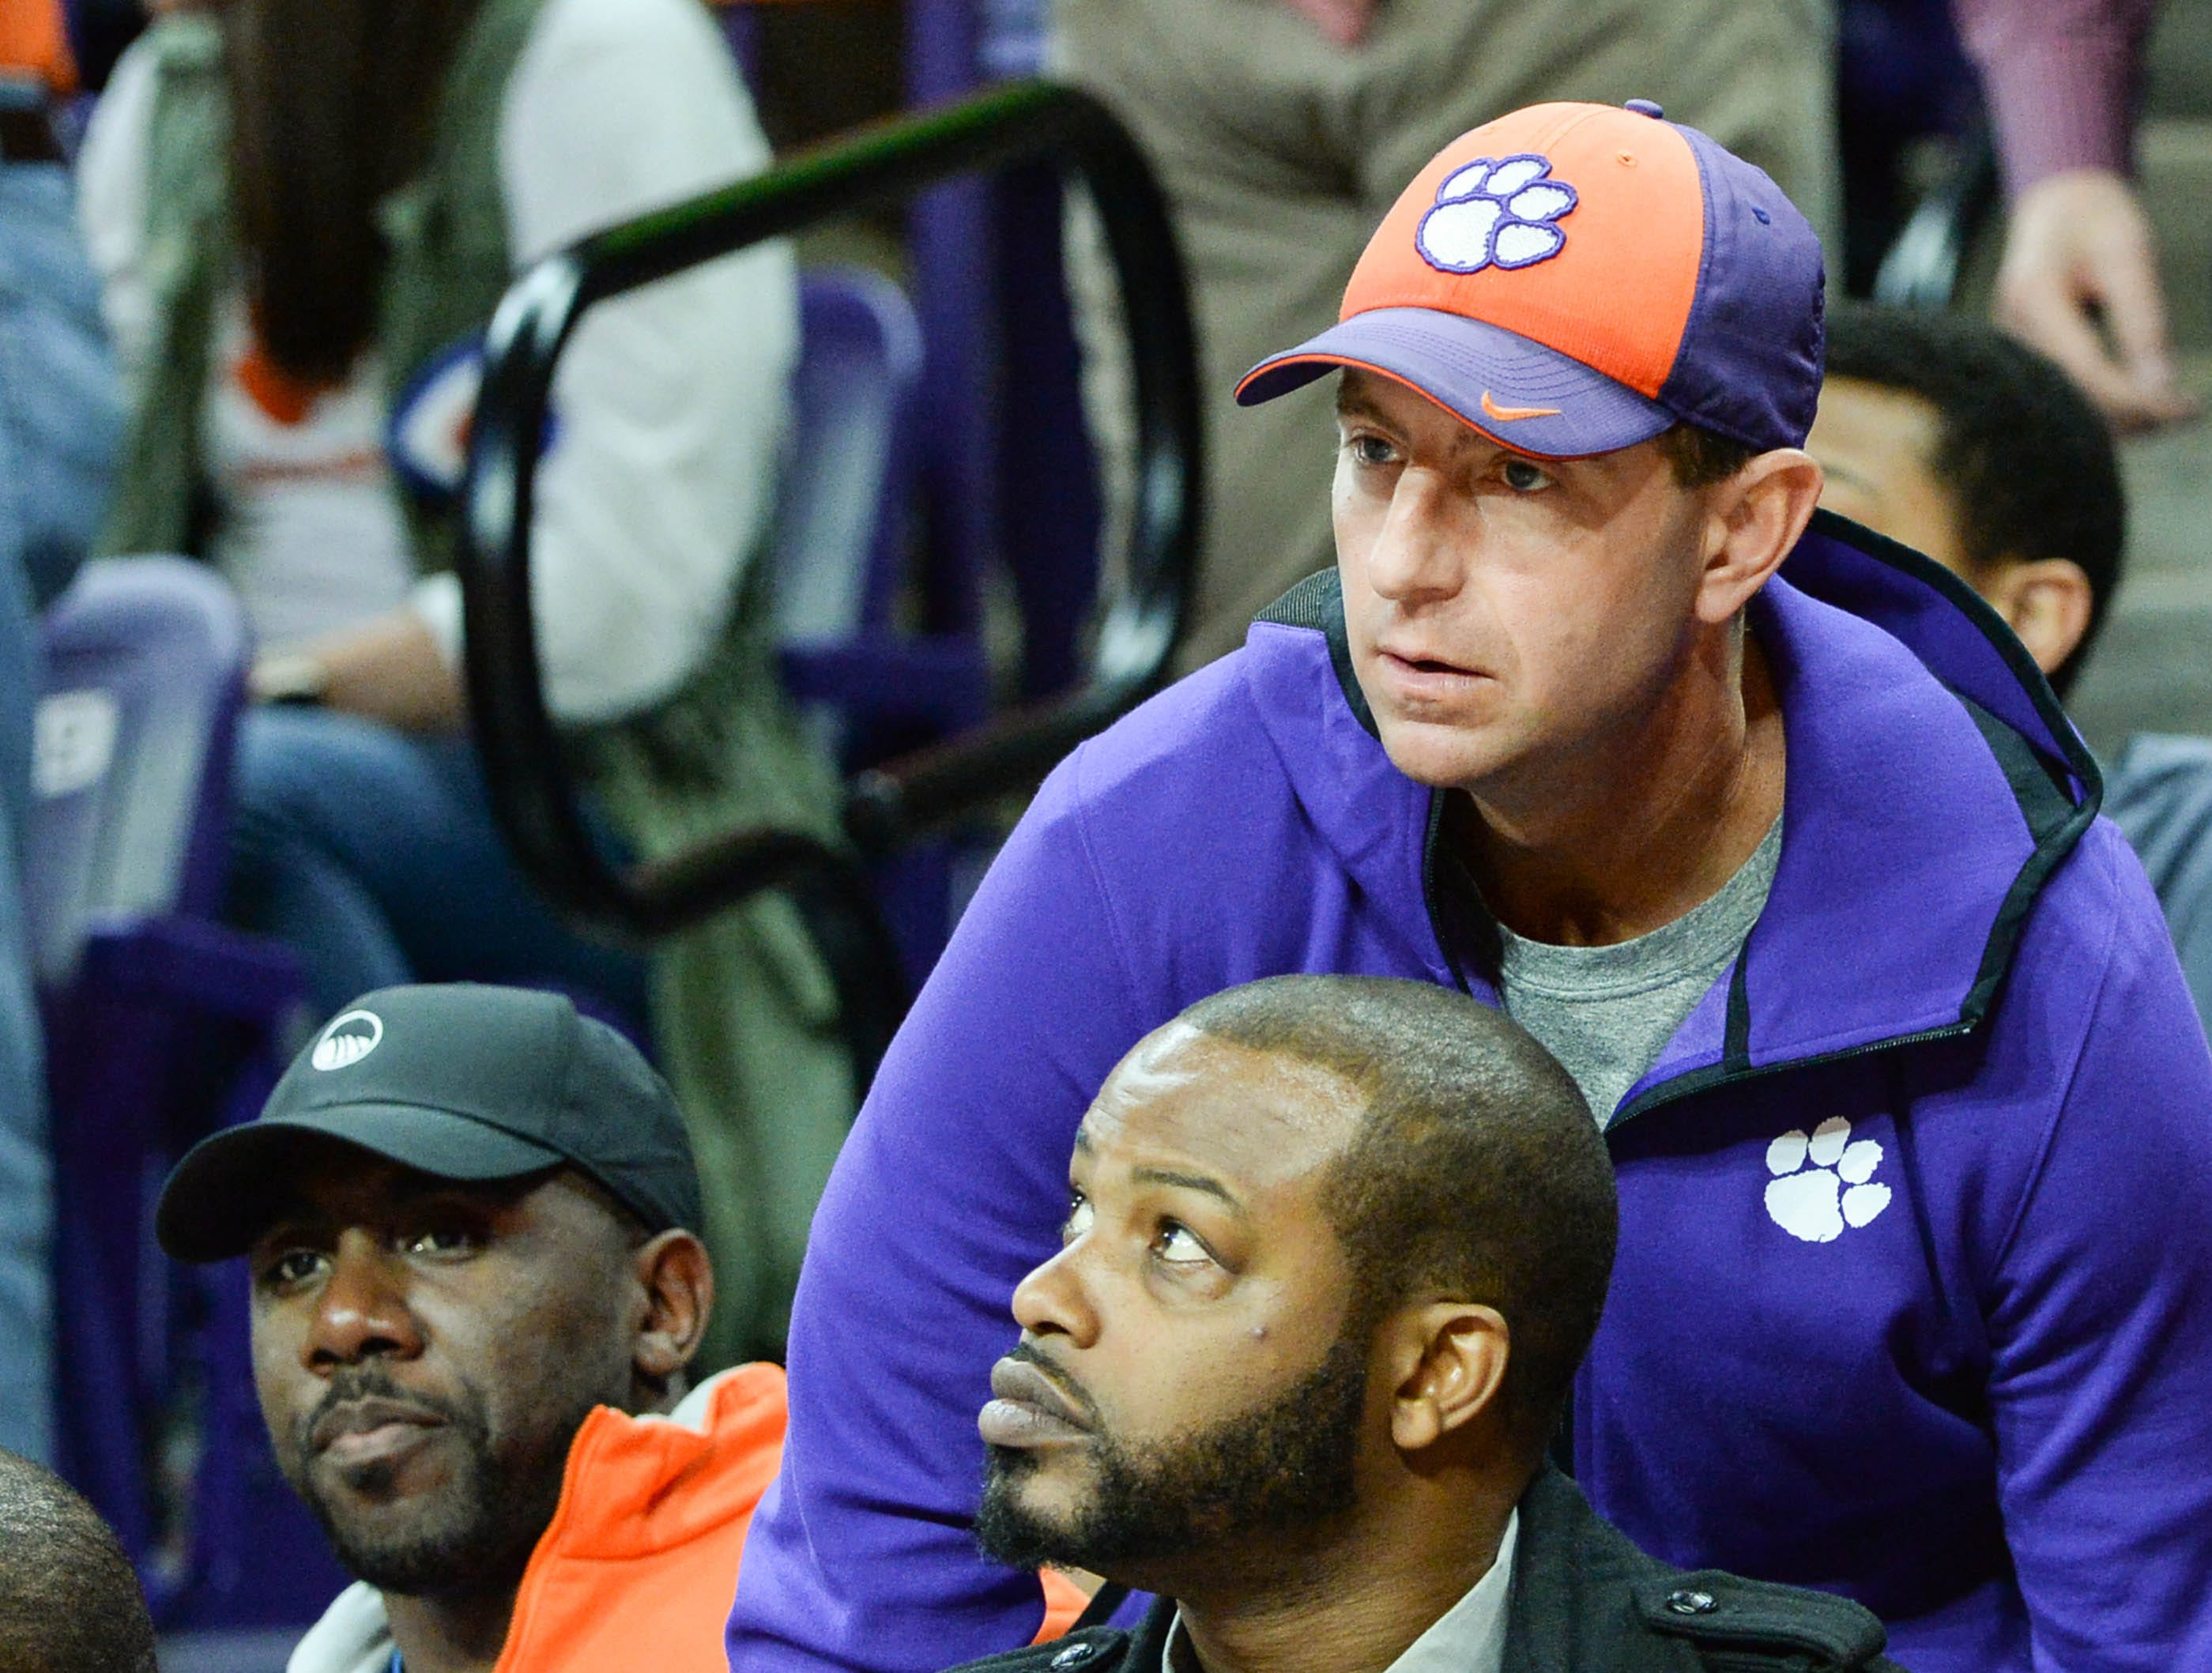 Former football star C.J. Spiller, left, and Clemson Head Football Coach Dabo Swinney attend the Syracuse game, during the second half in Littlejohn Coliseum in Clemson Saturday, March 9, 2019.